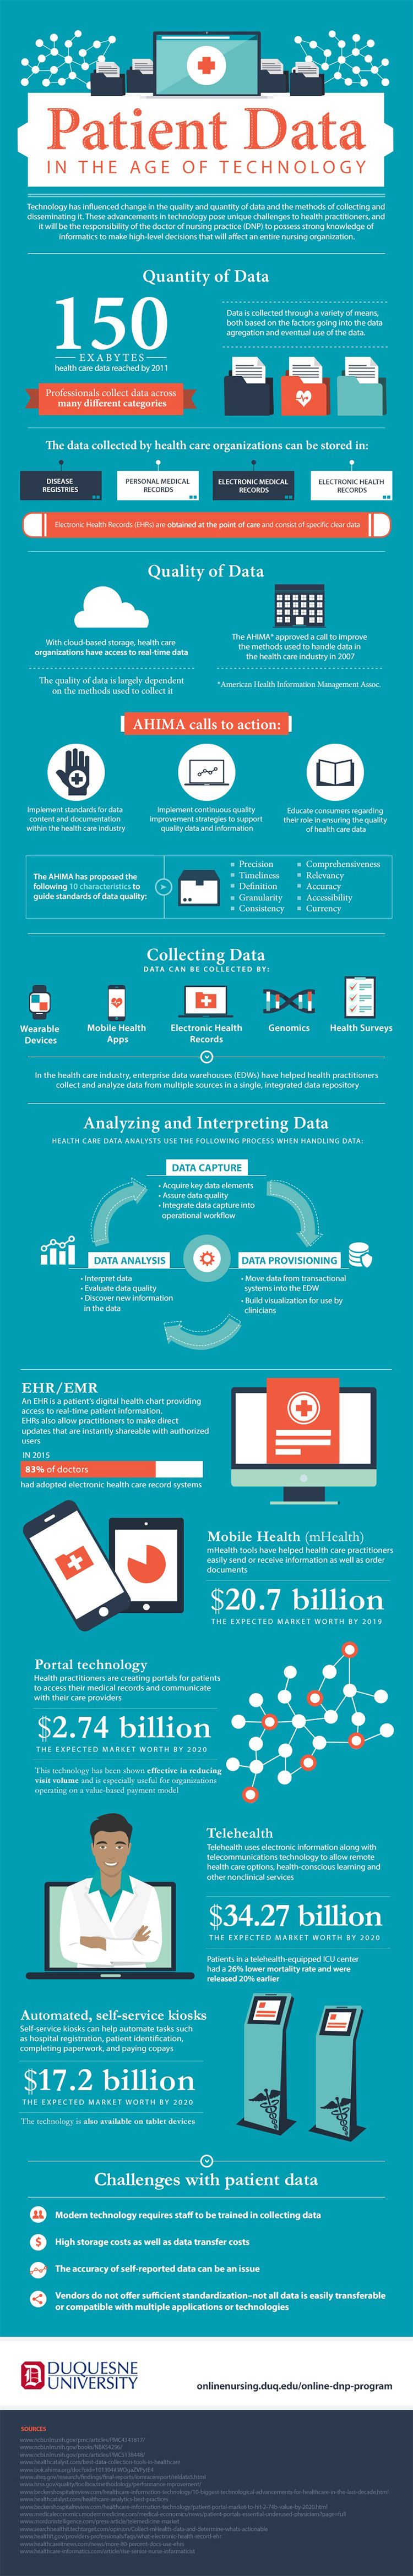 Patient Data in the Age of Technology Infographic